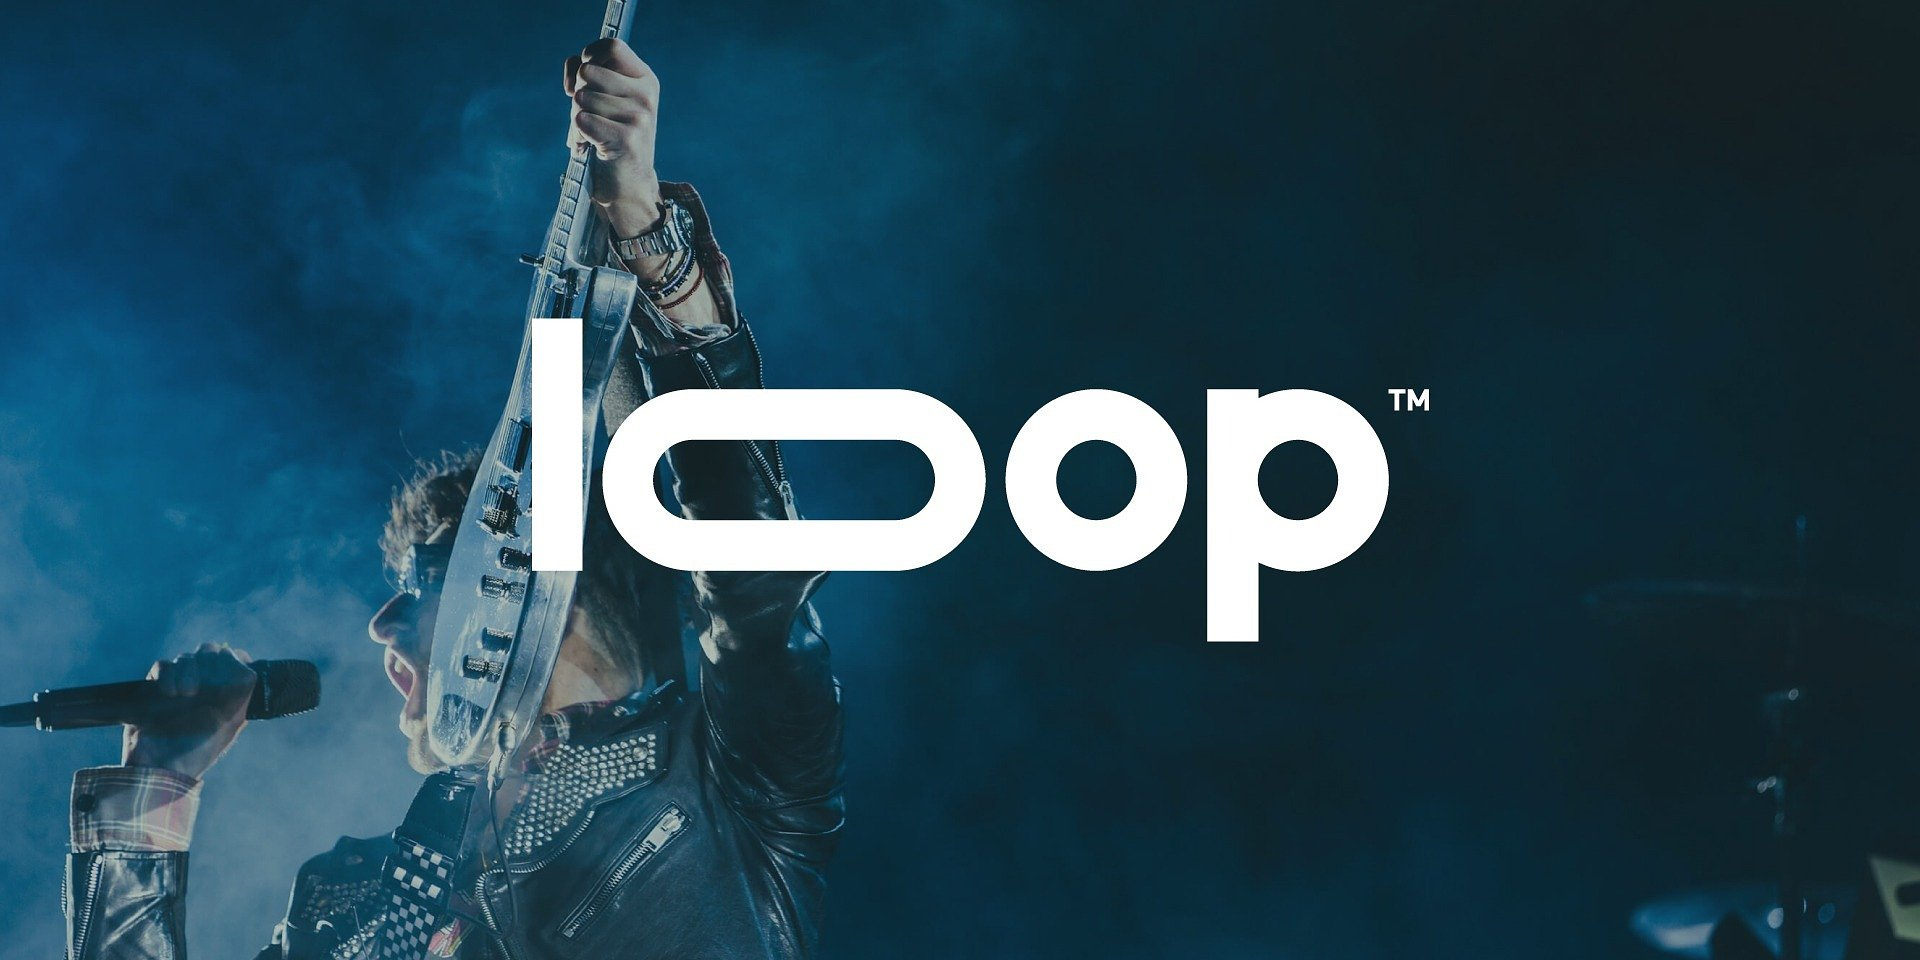 Loop Media, Inc. CEO and Co-Founder Jon Niermann Announces Virtual Music Festival in Collaboration with Twitch Benefiting MusiCares